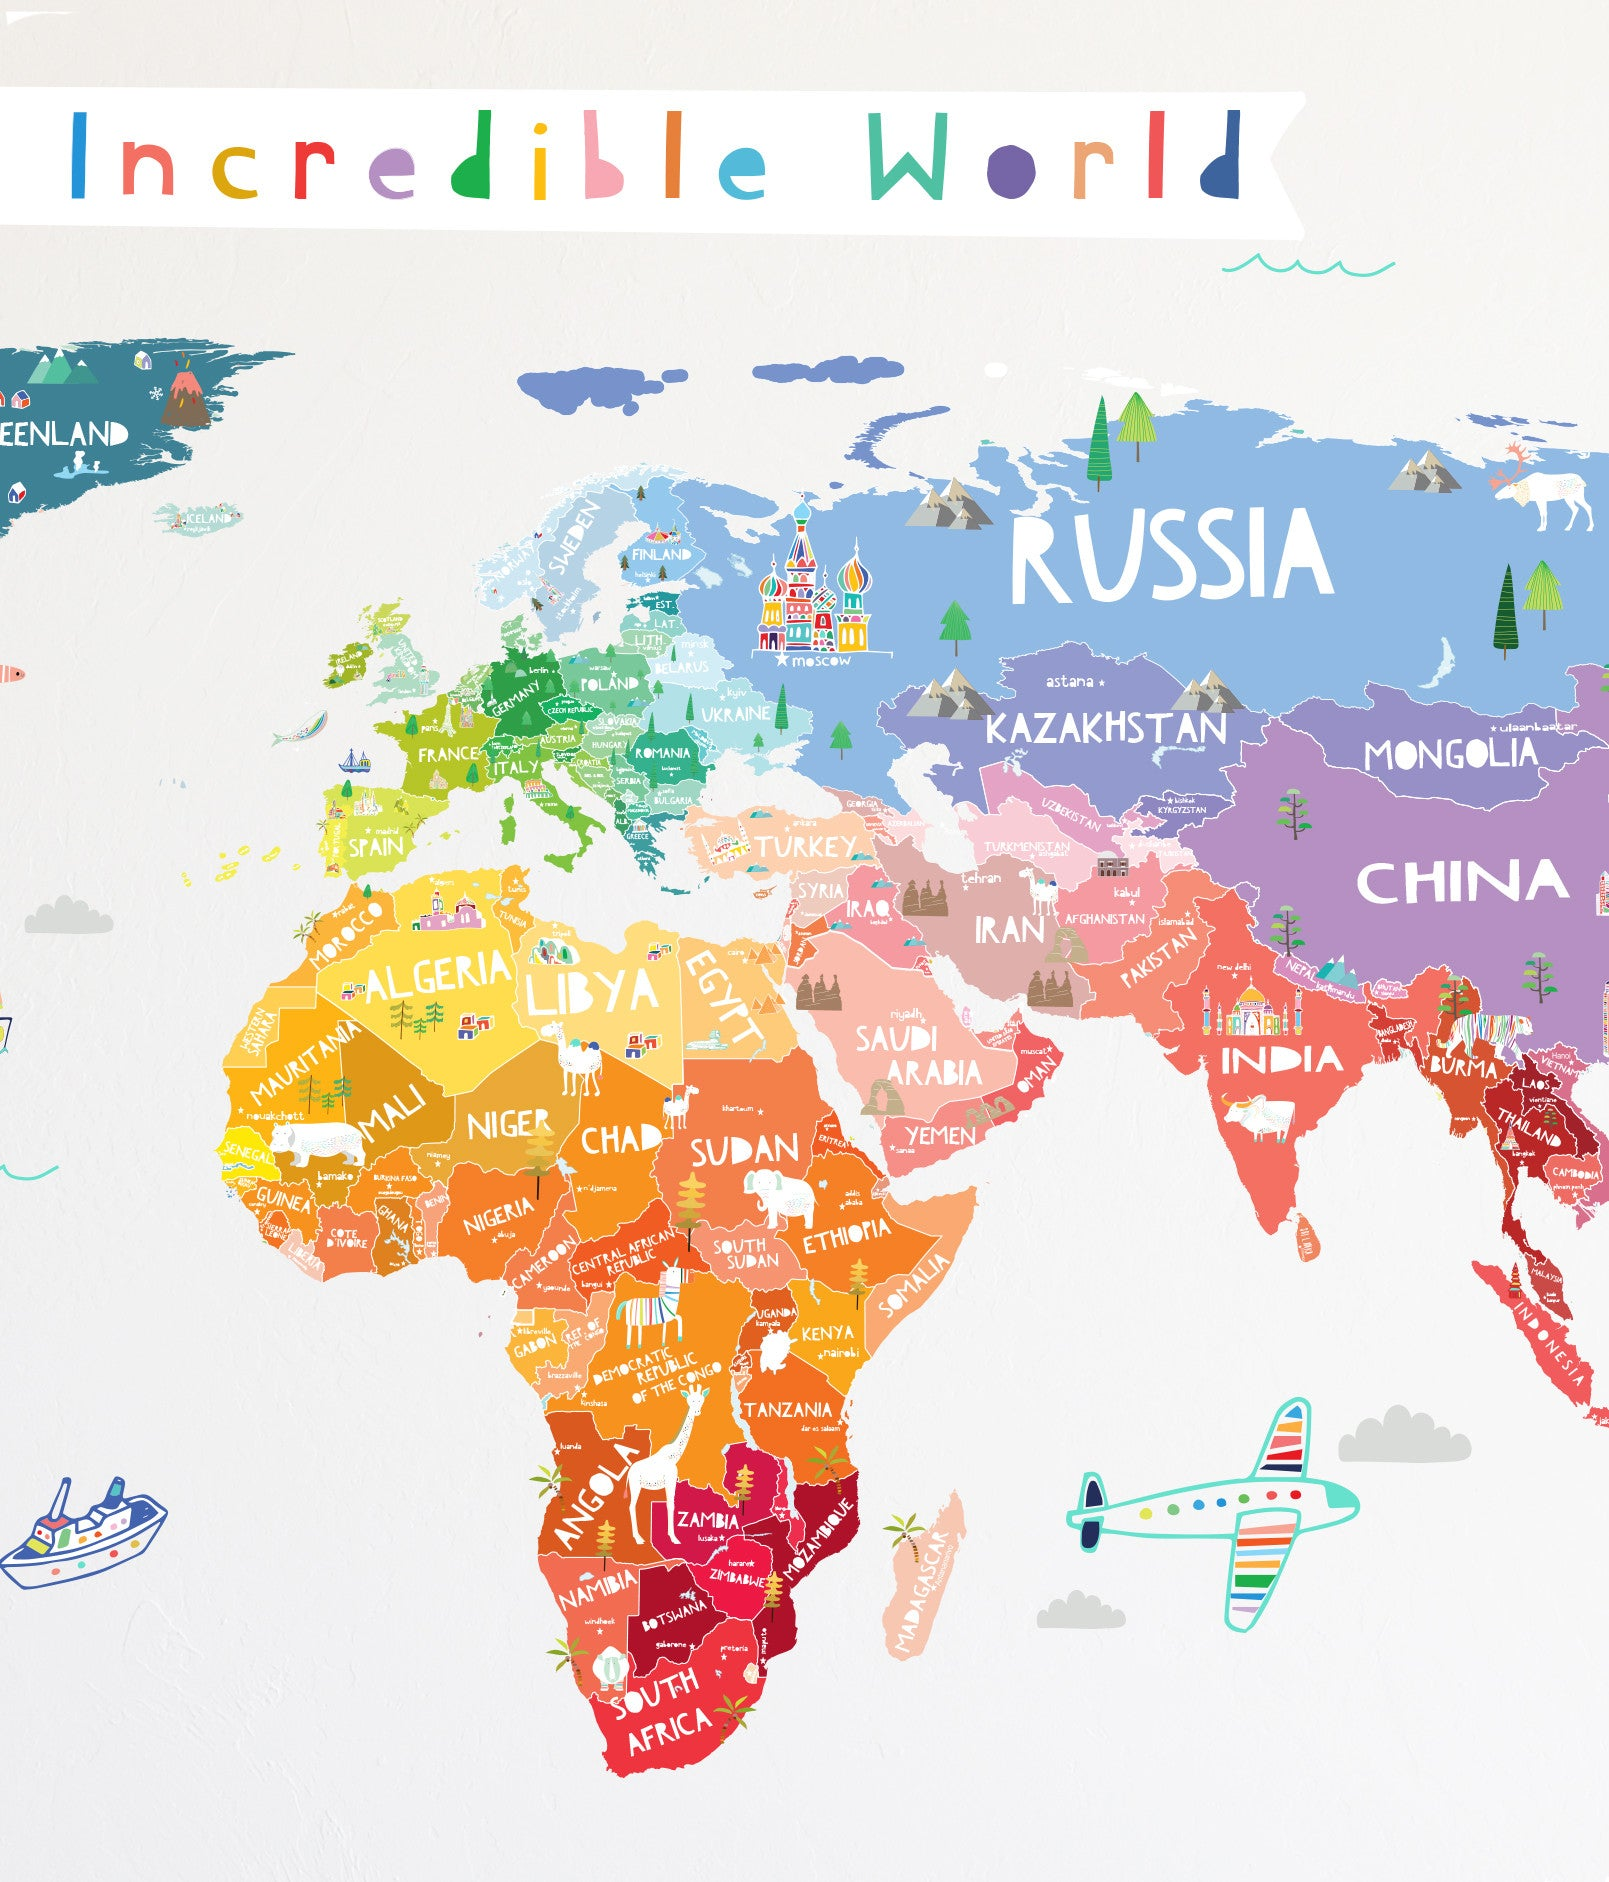 Our Incredible World Cut World Map Wall Decal with ... on map facebook covers, map wall mirror, map wall artwork, west point decal, diamond window decal, map wallpaper, wrench decal, map wall graphics, pirate life decal, map wall clock, trd hood decal, map paper, map united states football league, map wall mural, map your neighborhood, map with title, map shirt, nautical compass decal, wwp decal, map kashmir conflict,